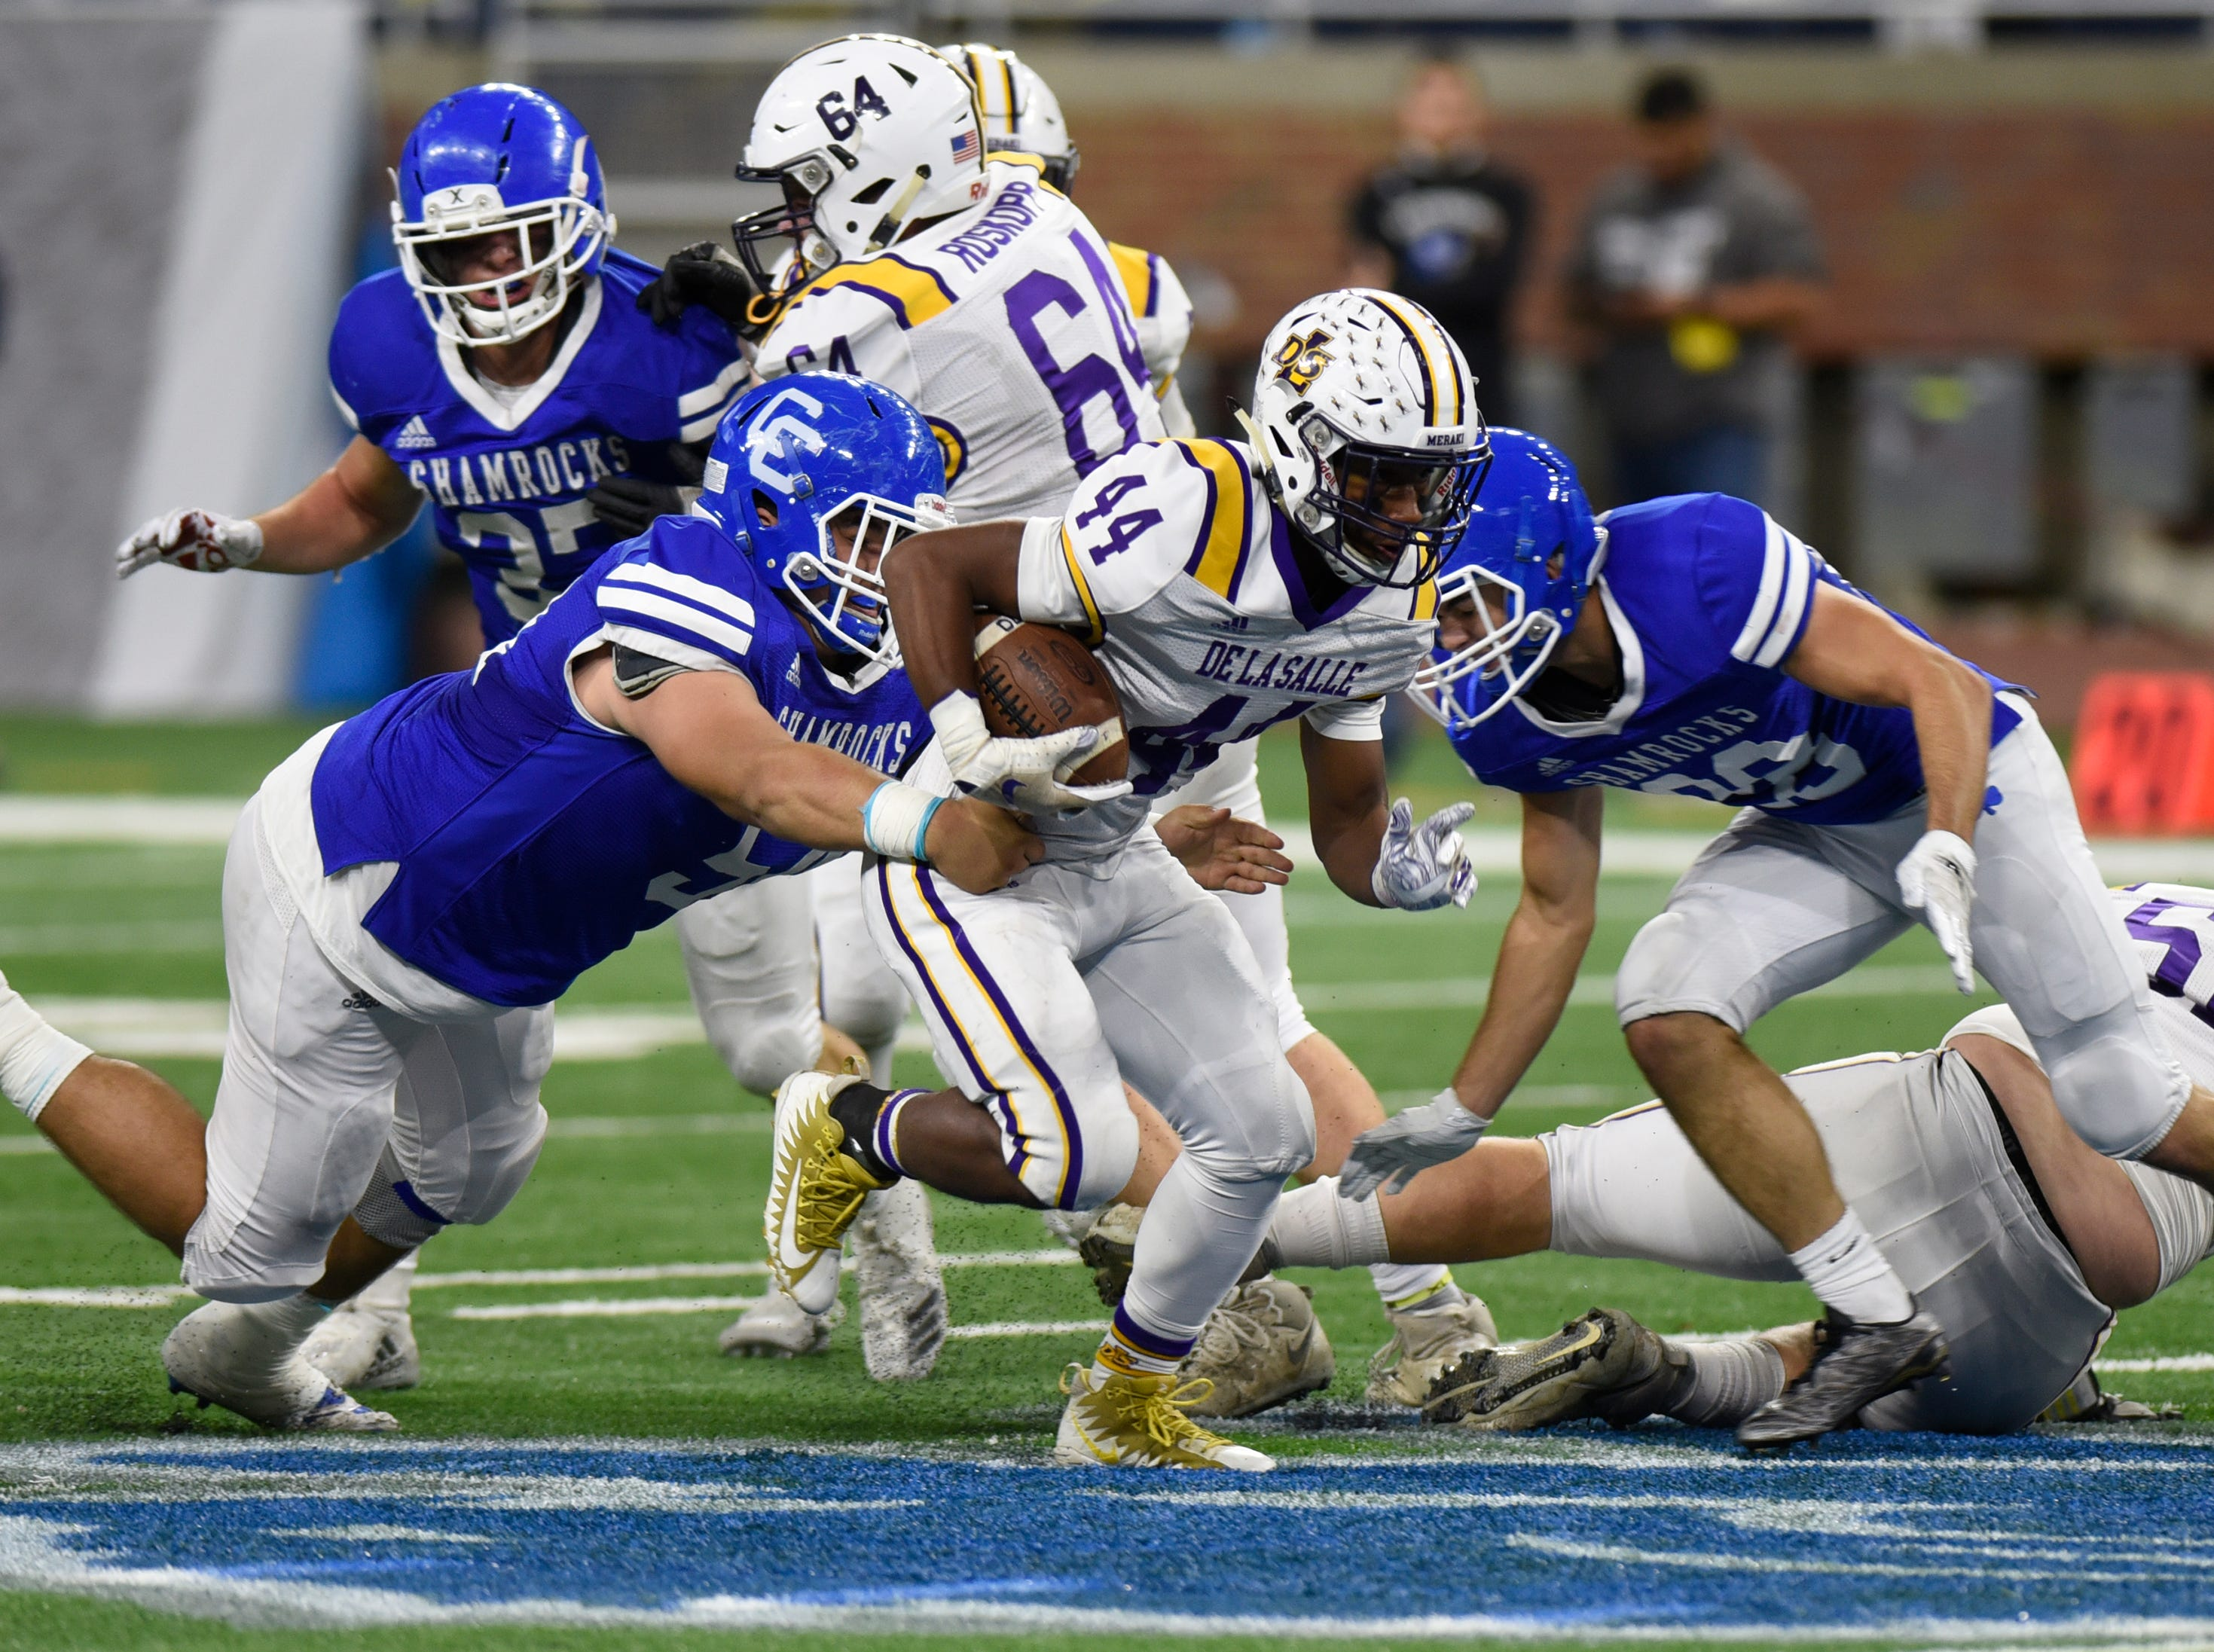 Warren De La Salle running back Jordan Rogers (44) runs the ball during Catholic League Prep Bowl AB Division championship game at Ford Field Oct. 20, 2018.